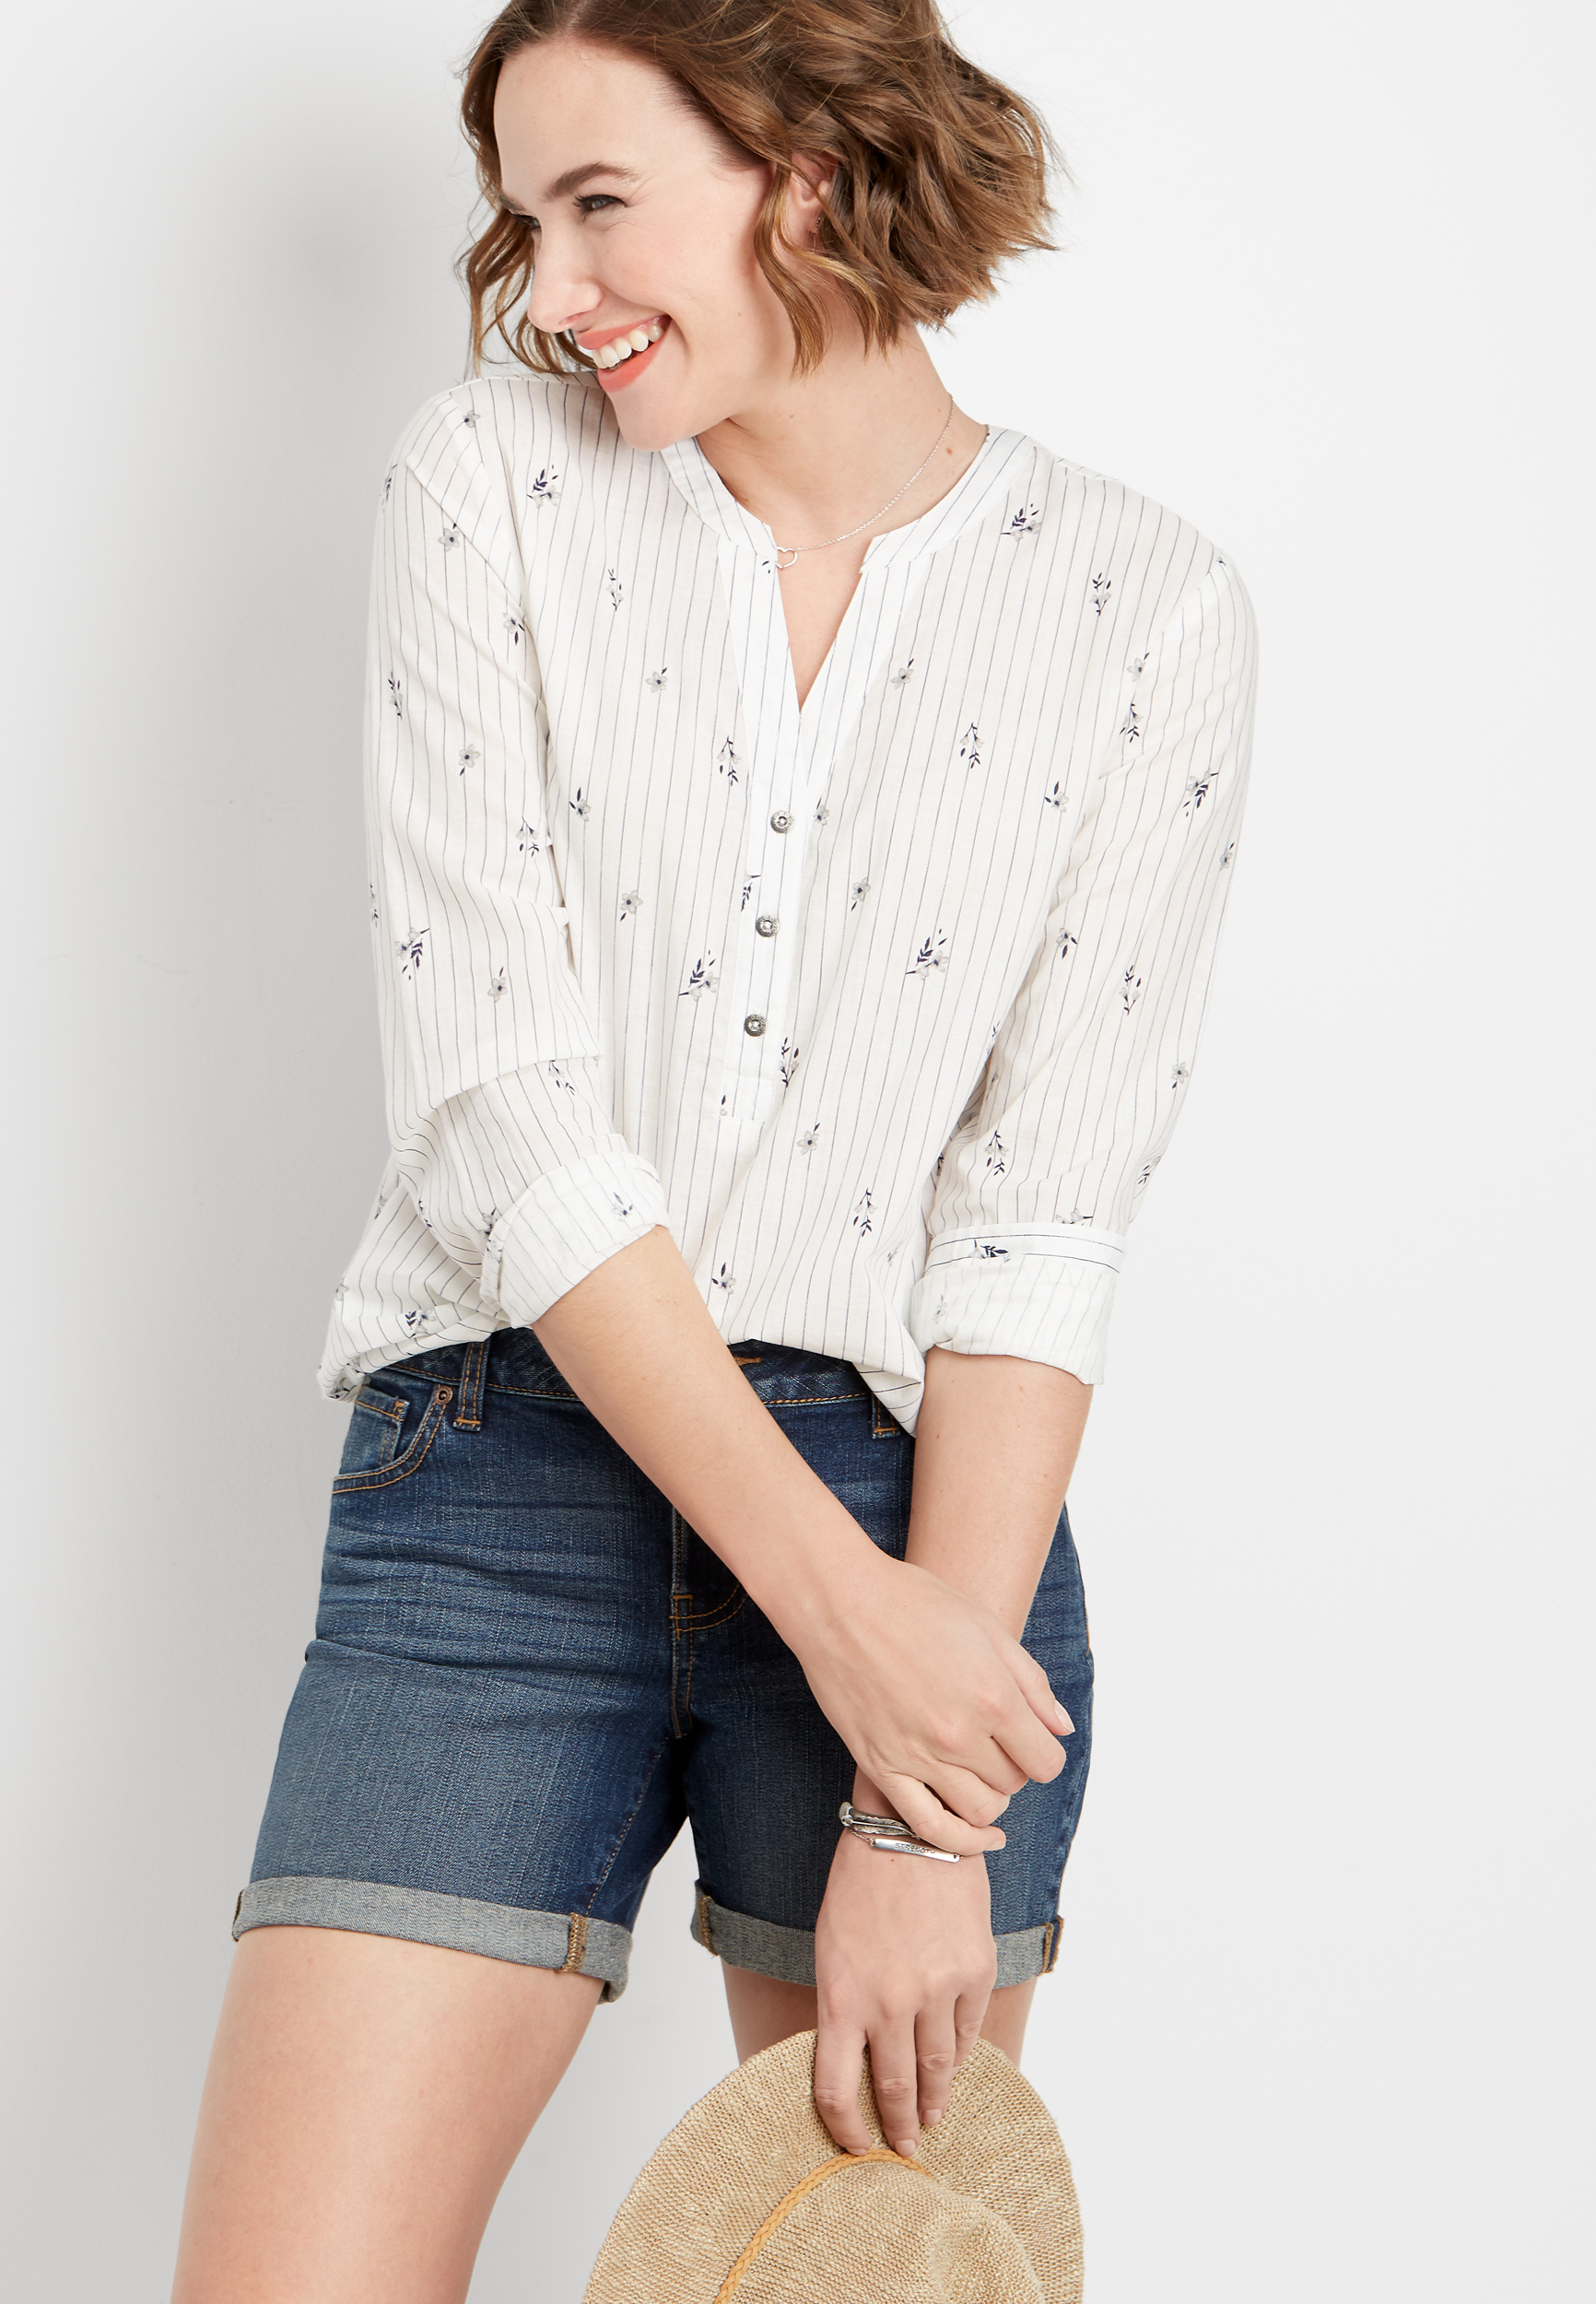 Floral Stripe Button V Neck Popover Top by Maurices